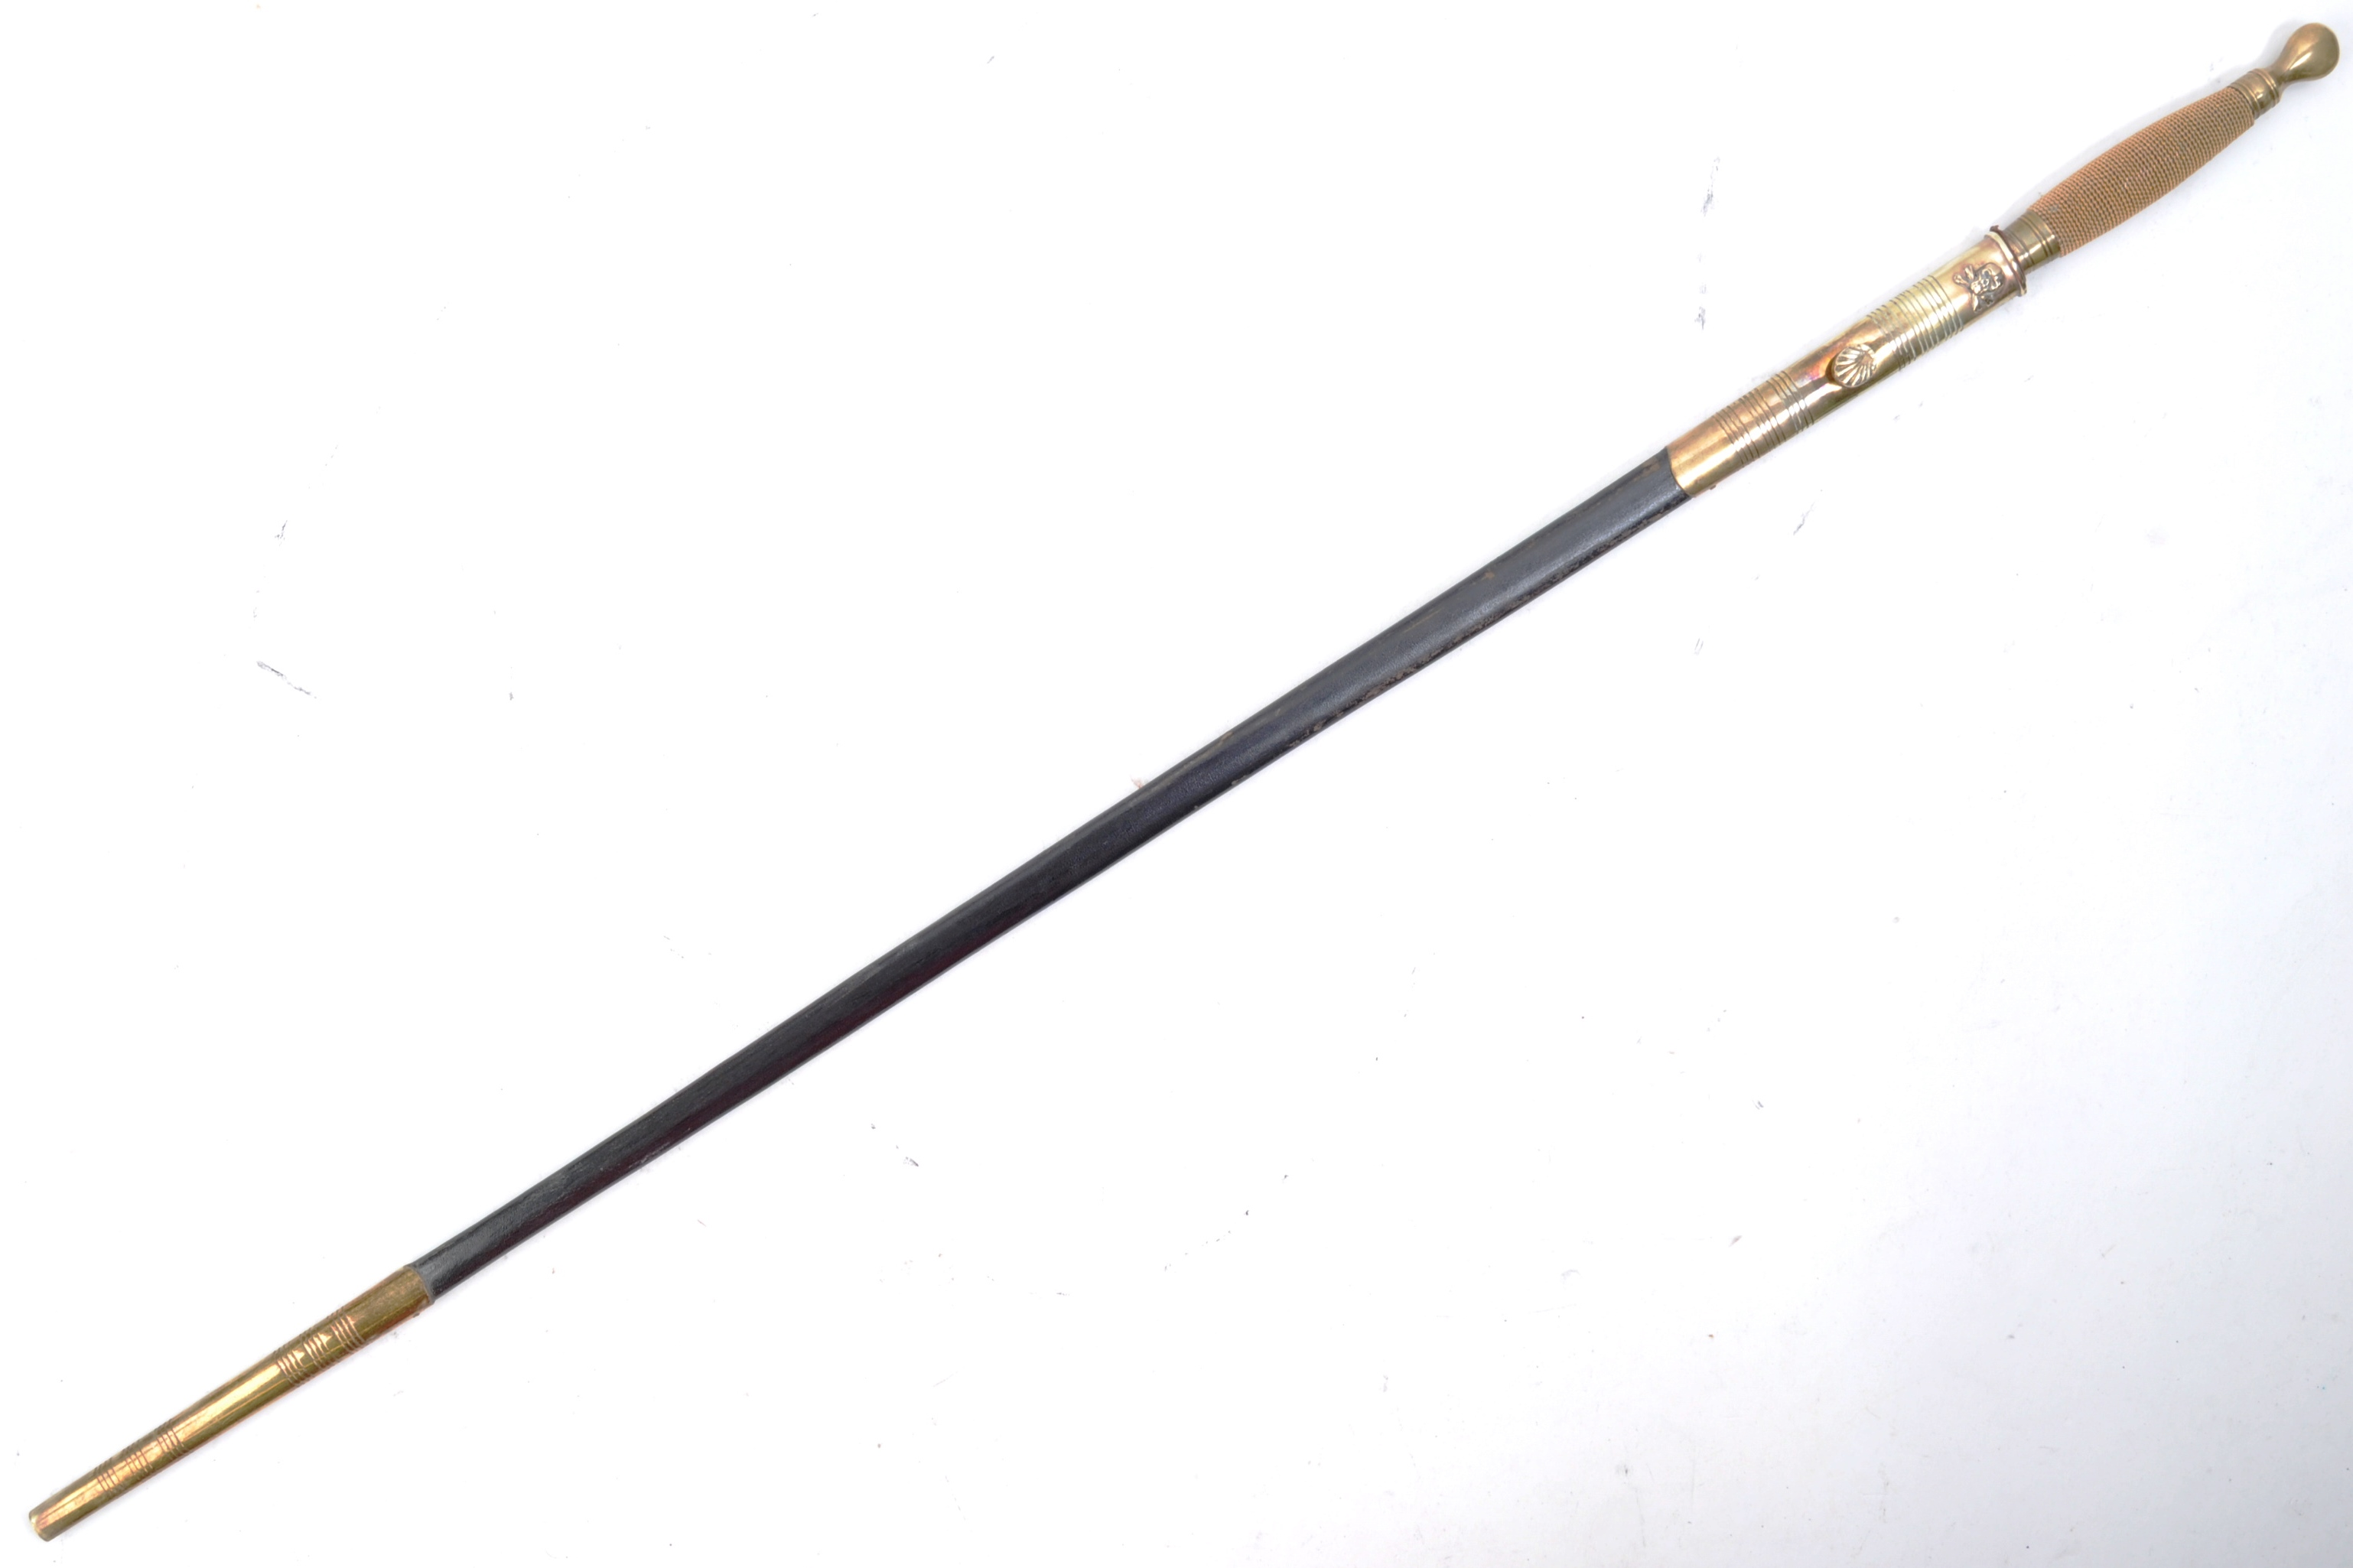 EARLY 20TH MASONIC WALKING CANE WITH CONCEALED SWORD - Image 8 of 11